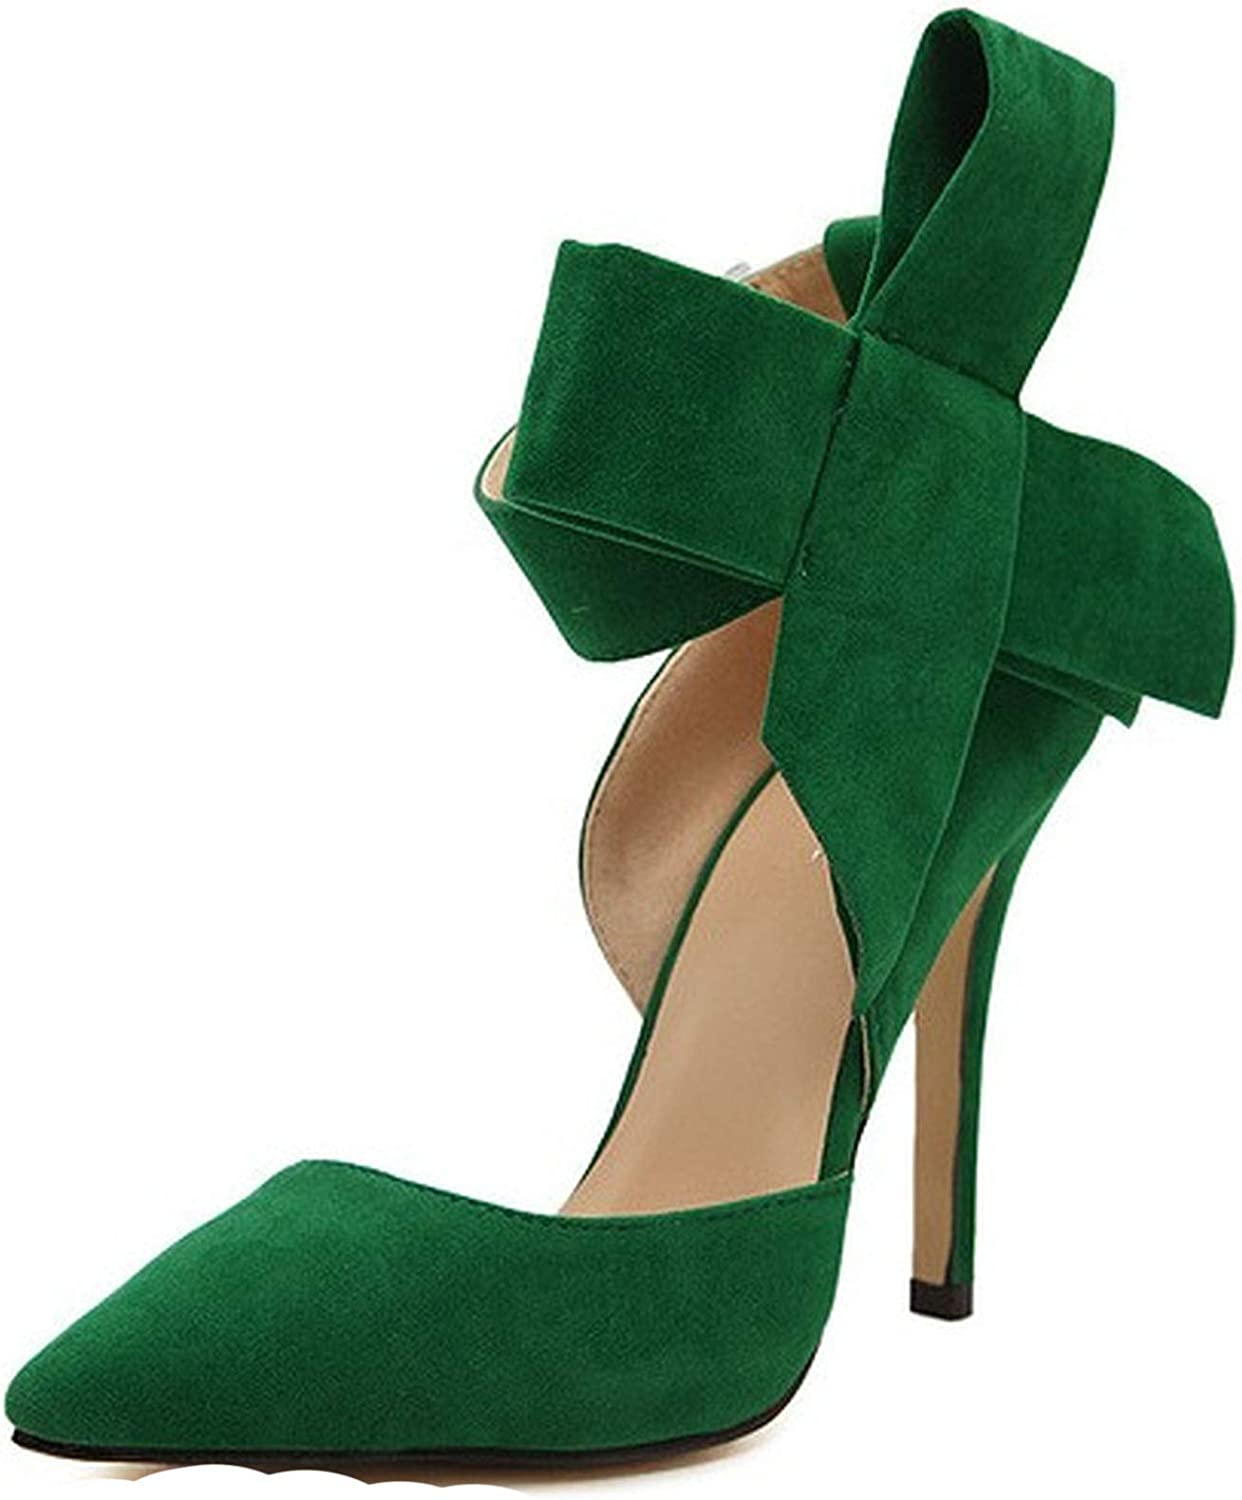 Monica's house Women Big Bow Tie Butterfly Pointed Stiletto shoes Woman High Heels Plus Size Wedding shoes EE-285,Green,8